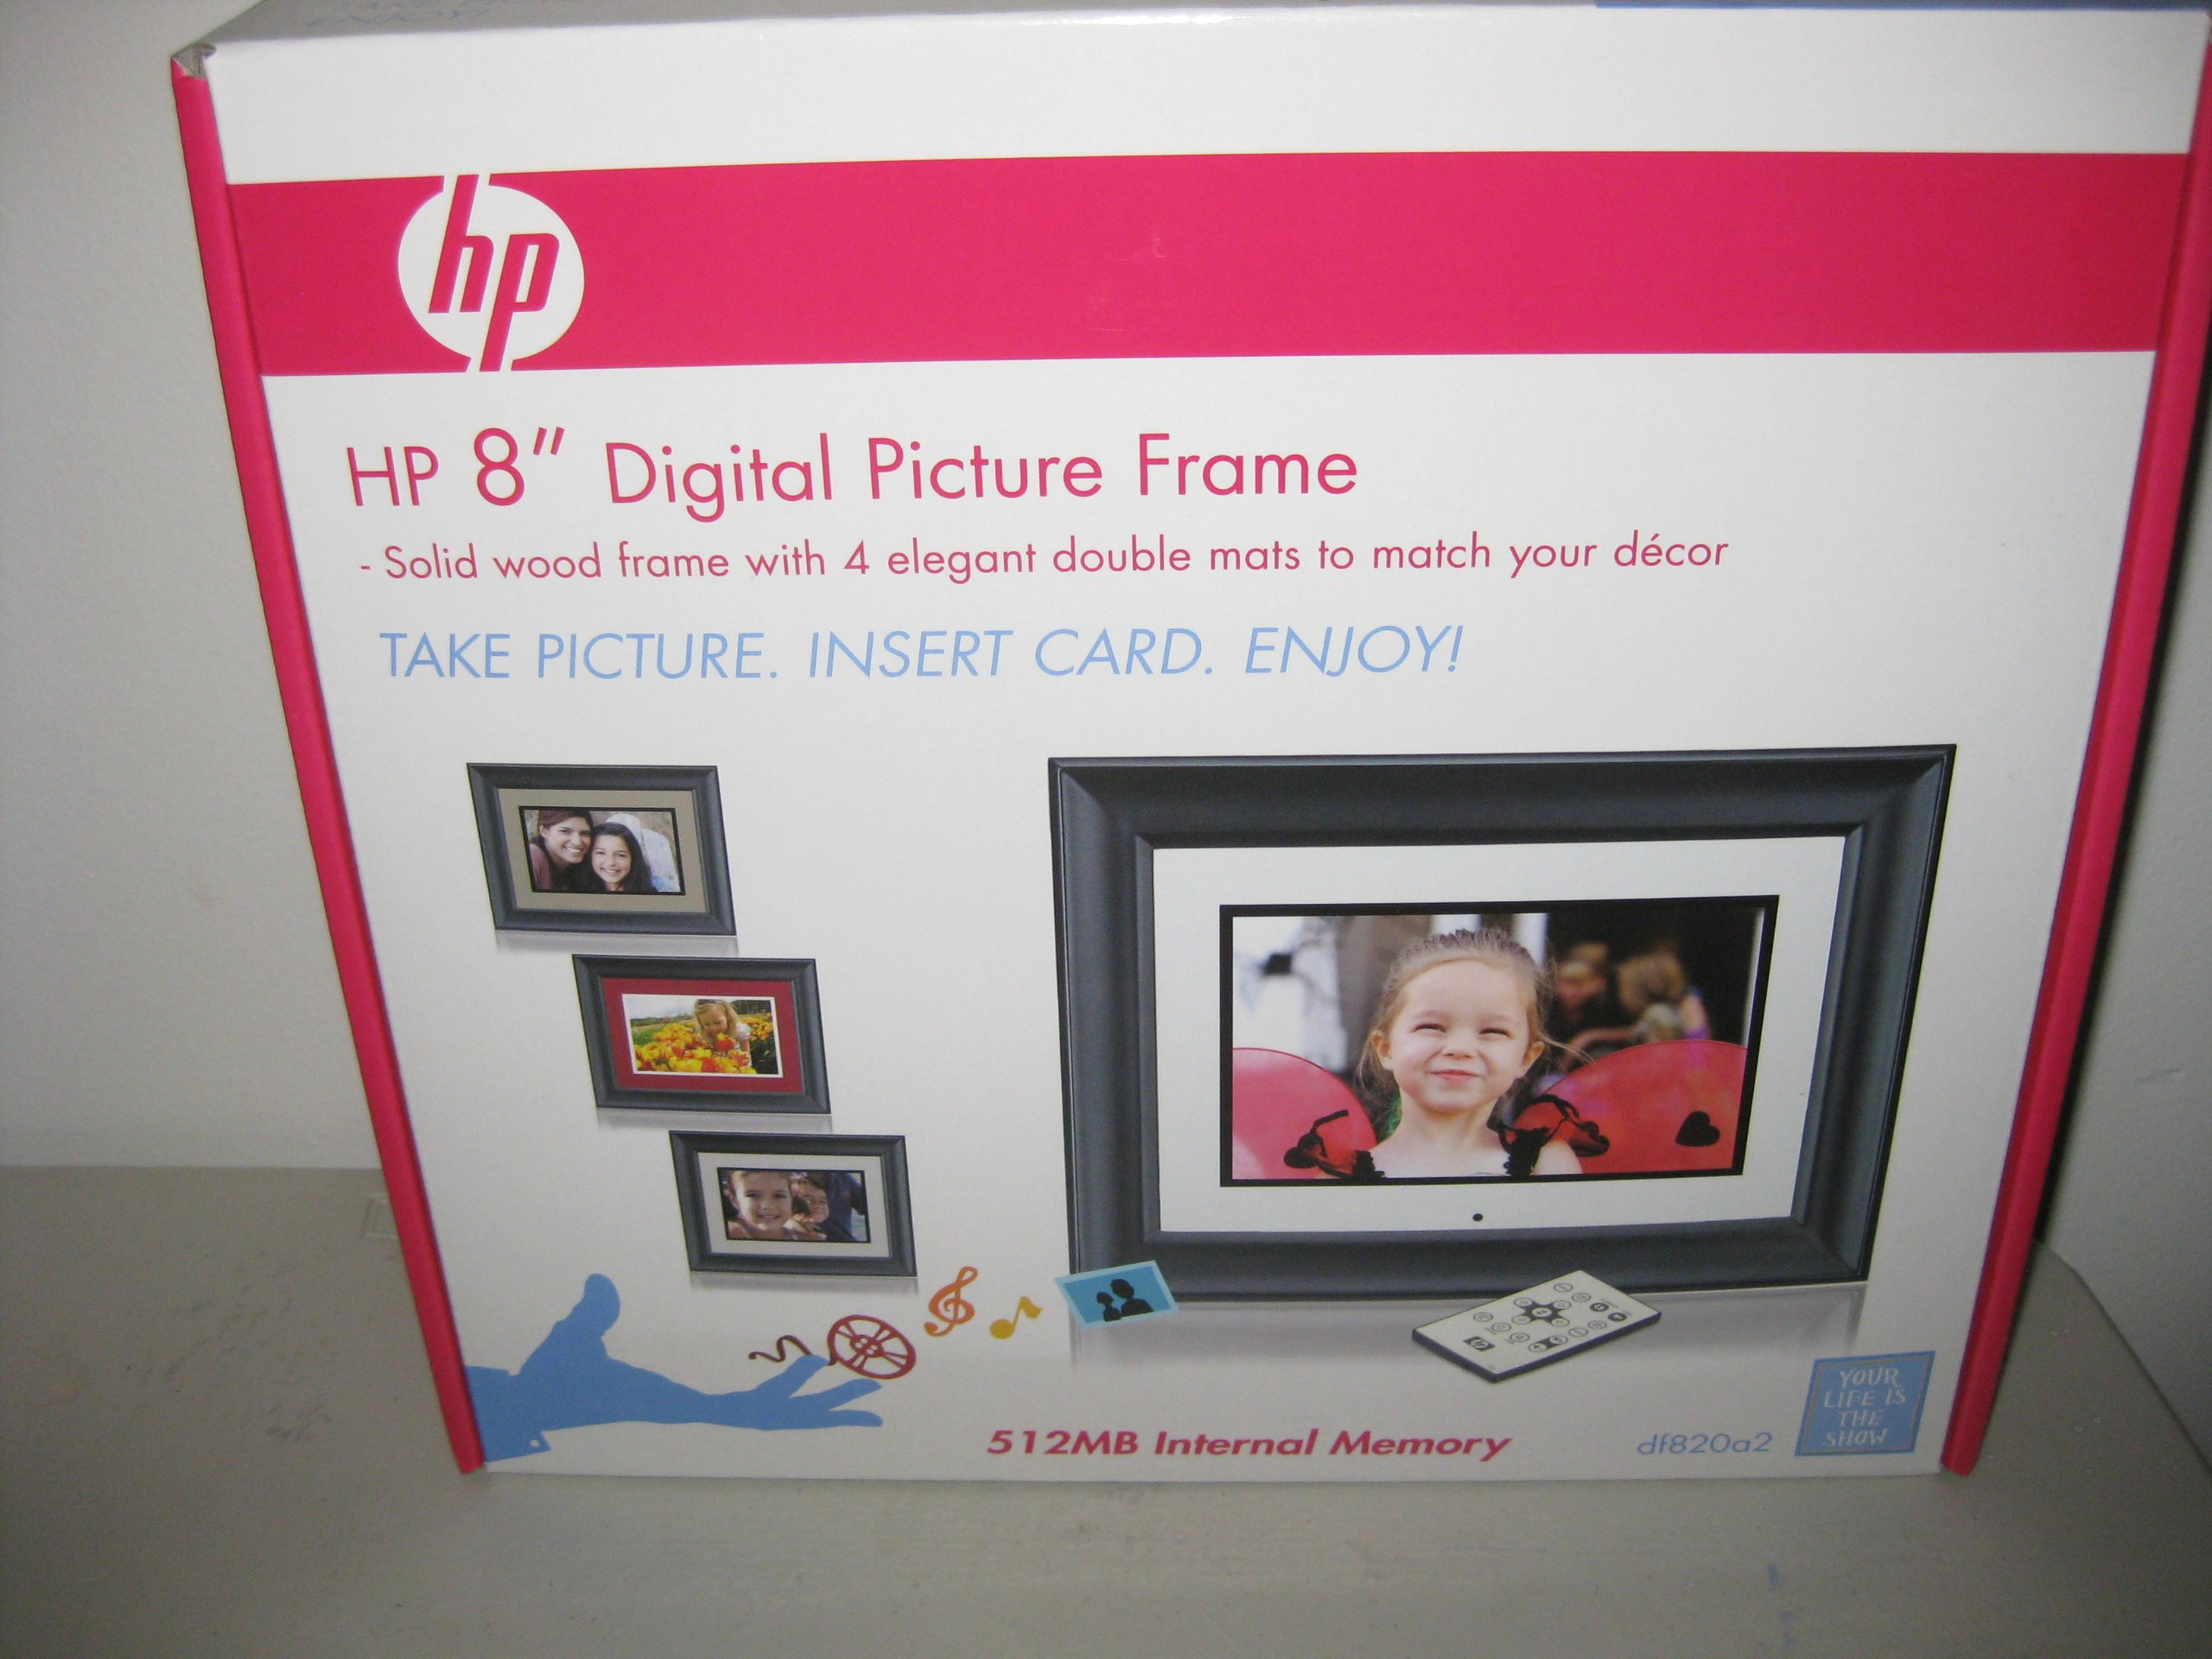 HP 8'' Digital Picture Frame df820a2 by HP